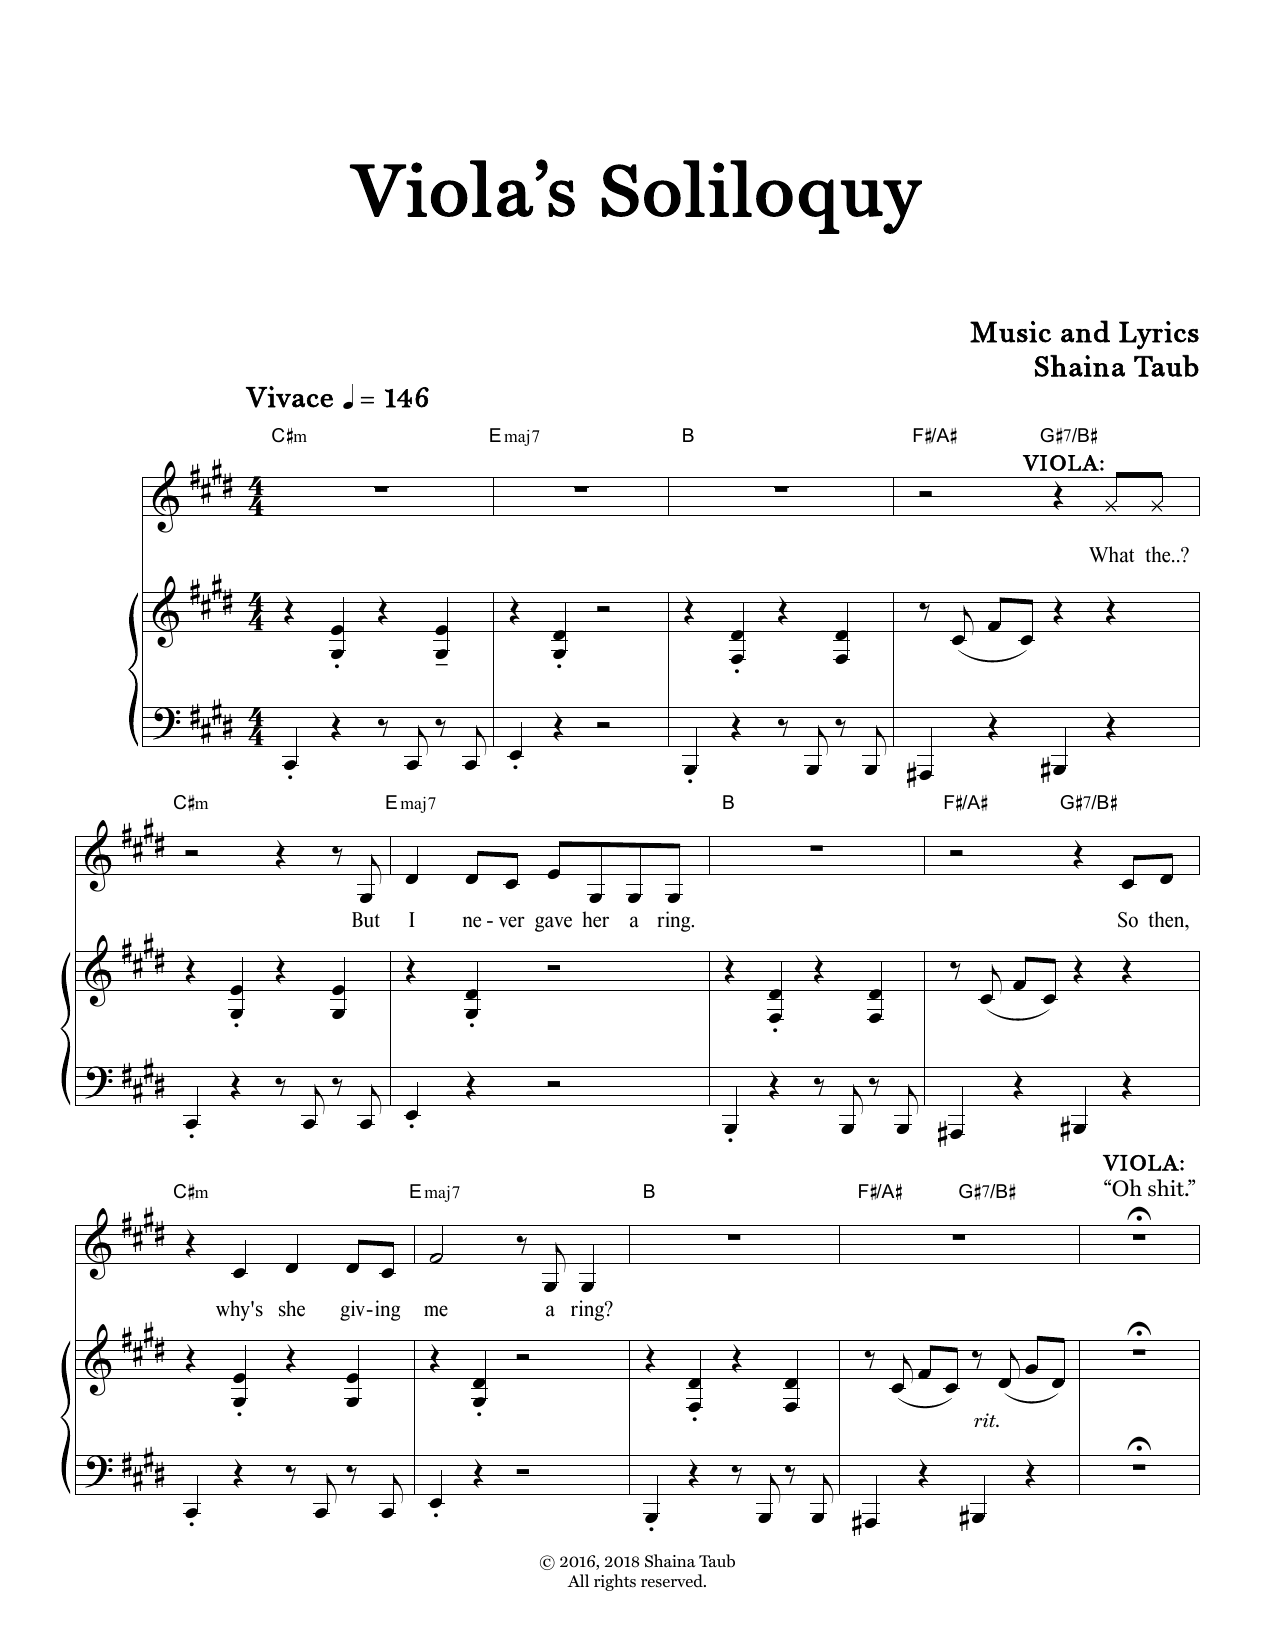 Viola's Soliloquy (from Twelfth Night) Sheet Music